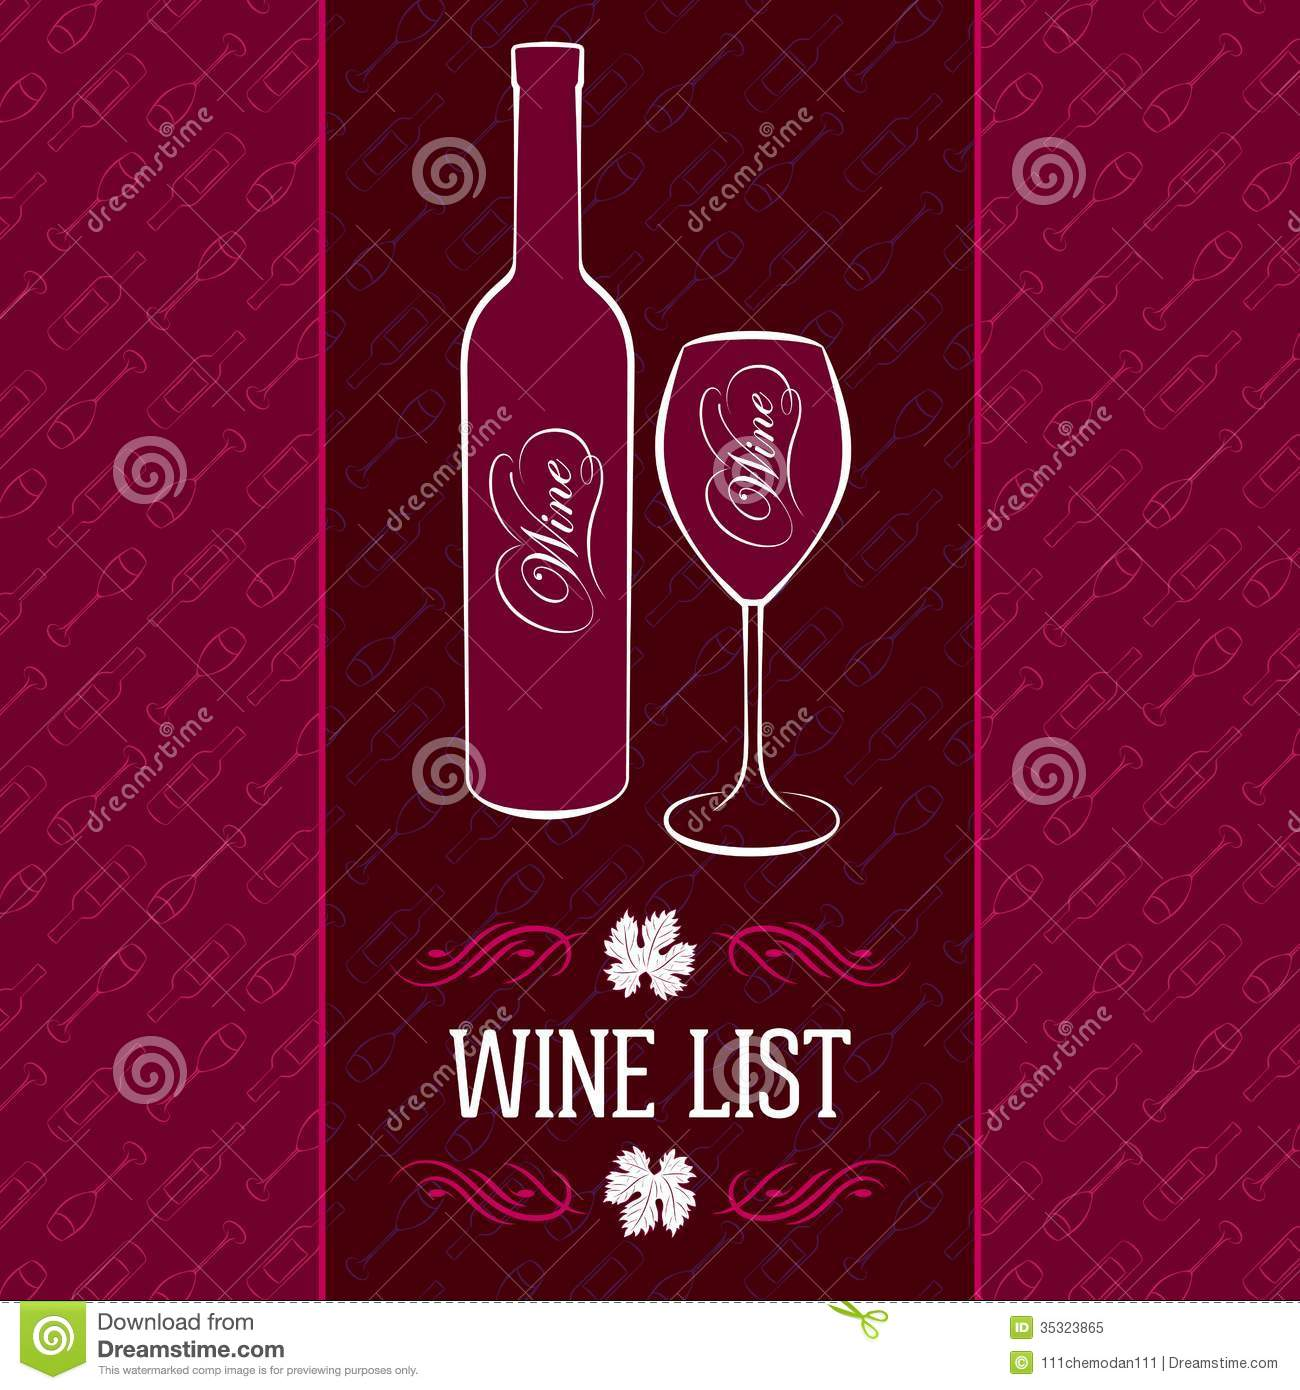 wine list design stock vector  image of burgundy  concept